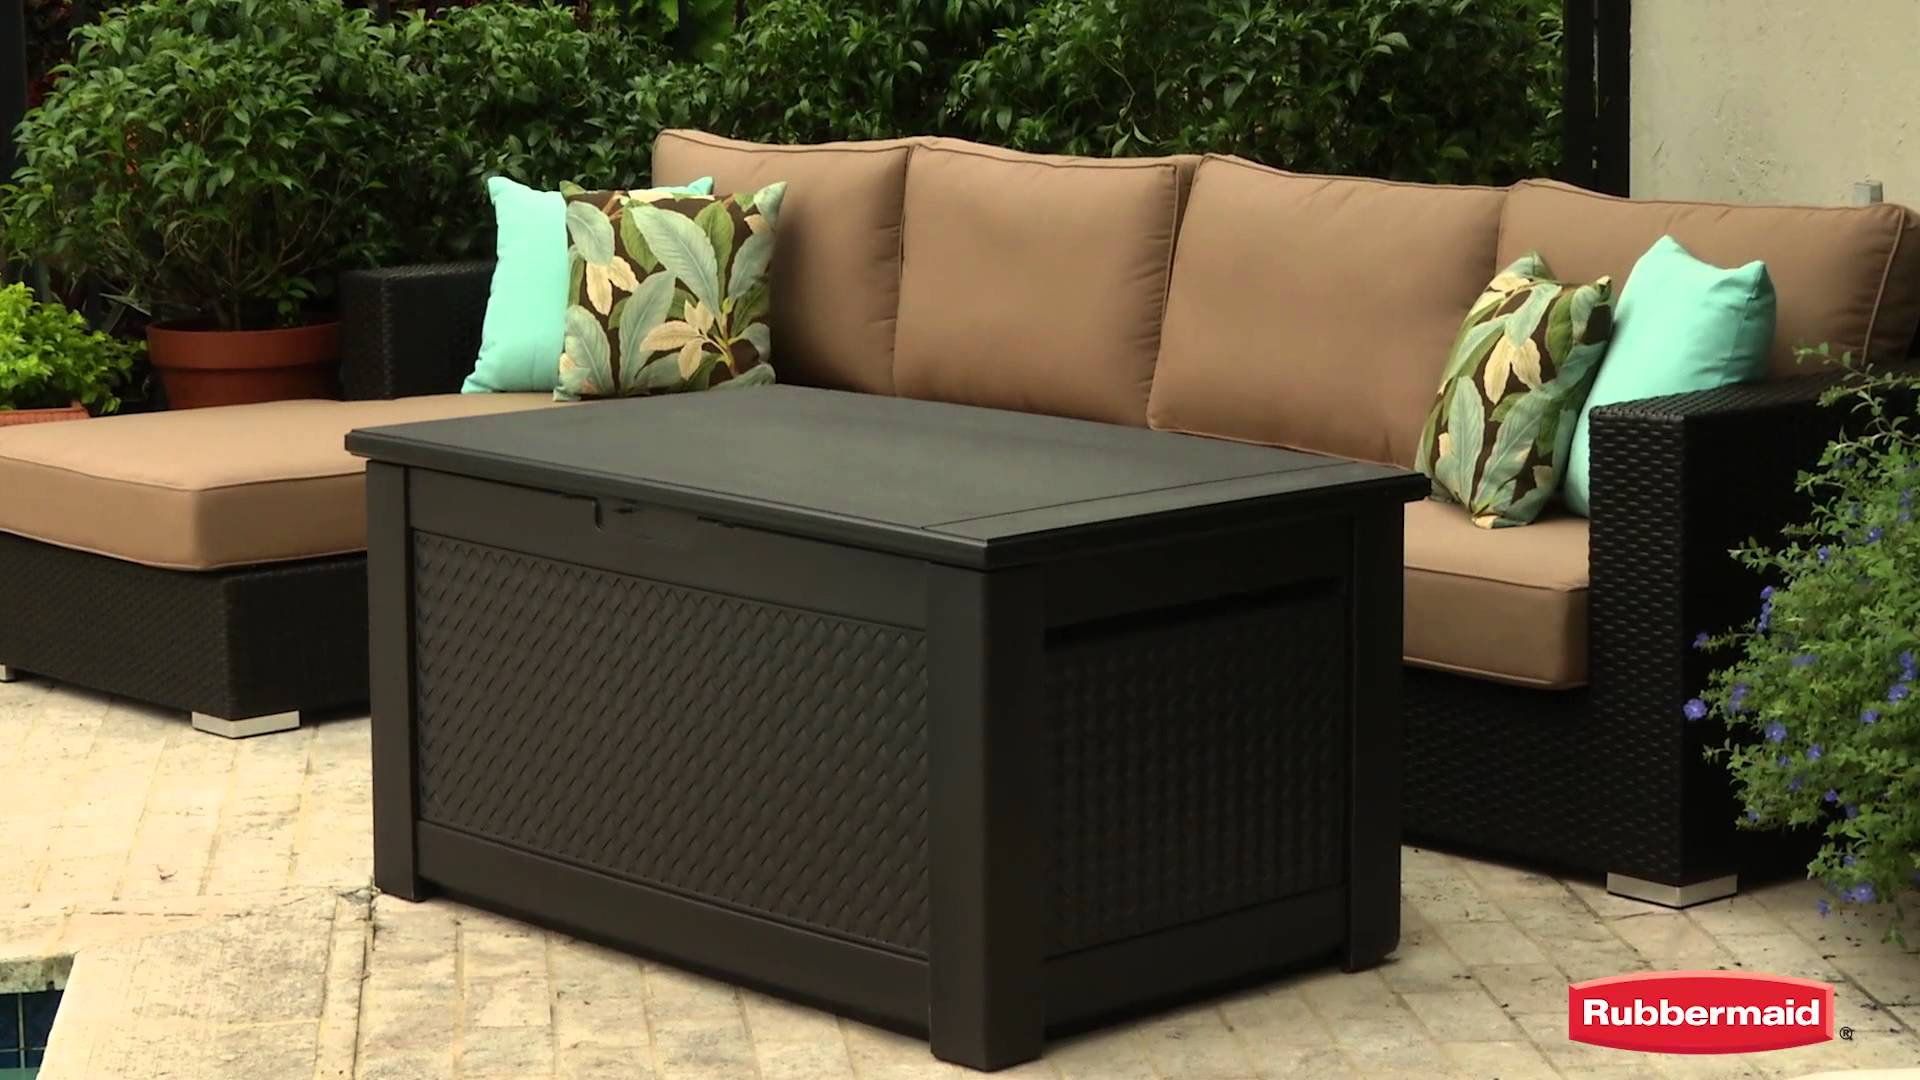 Compact Rubbermaid Patio Chic Storage Bench rubbermaid patio storage bench